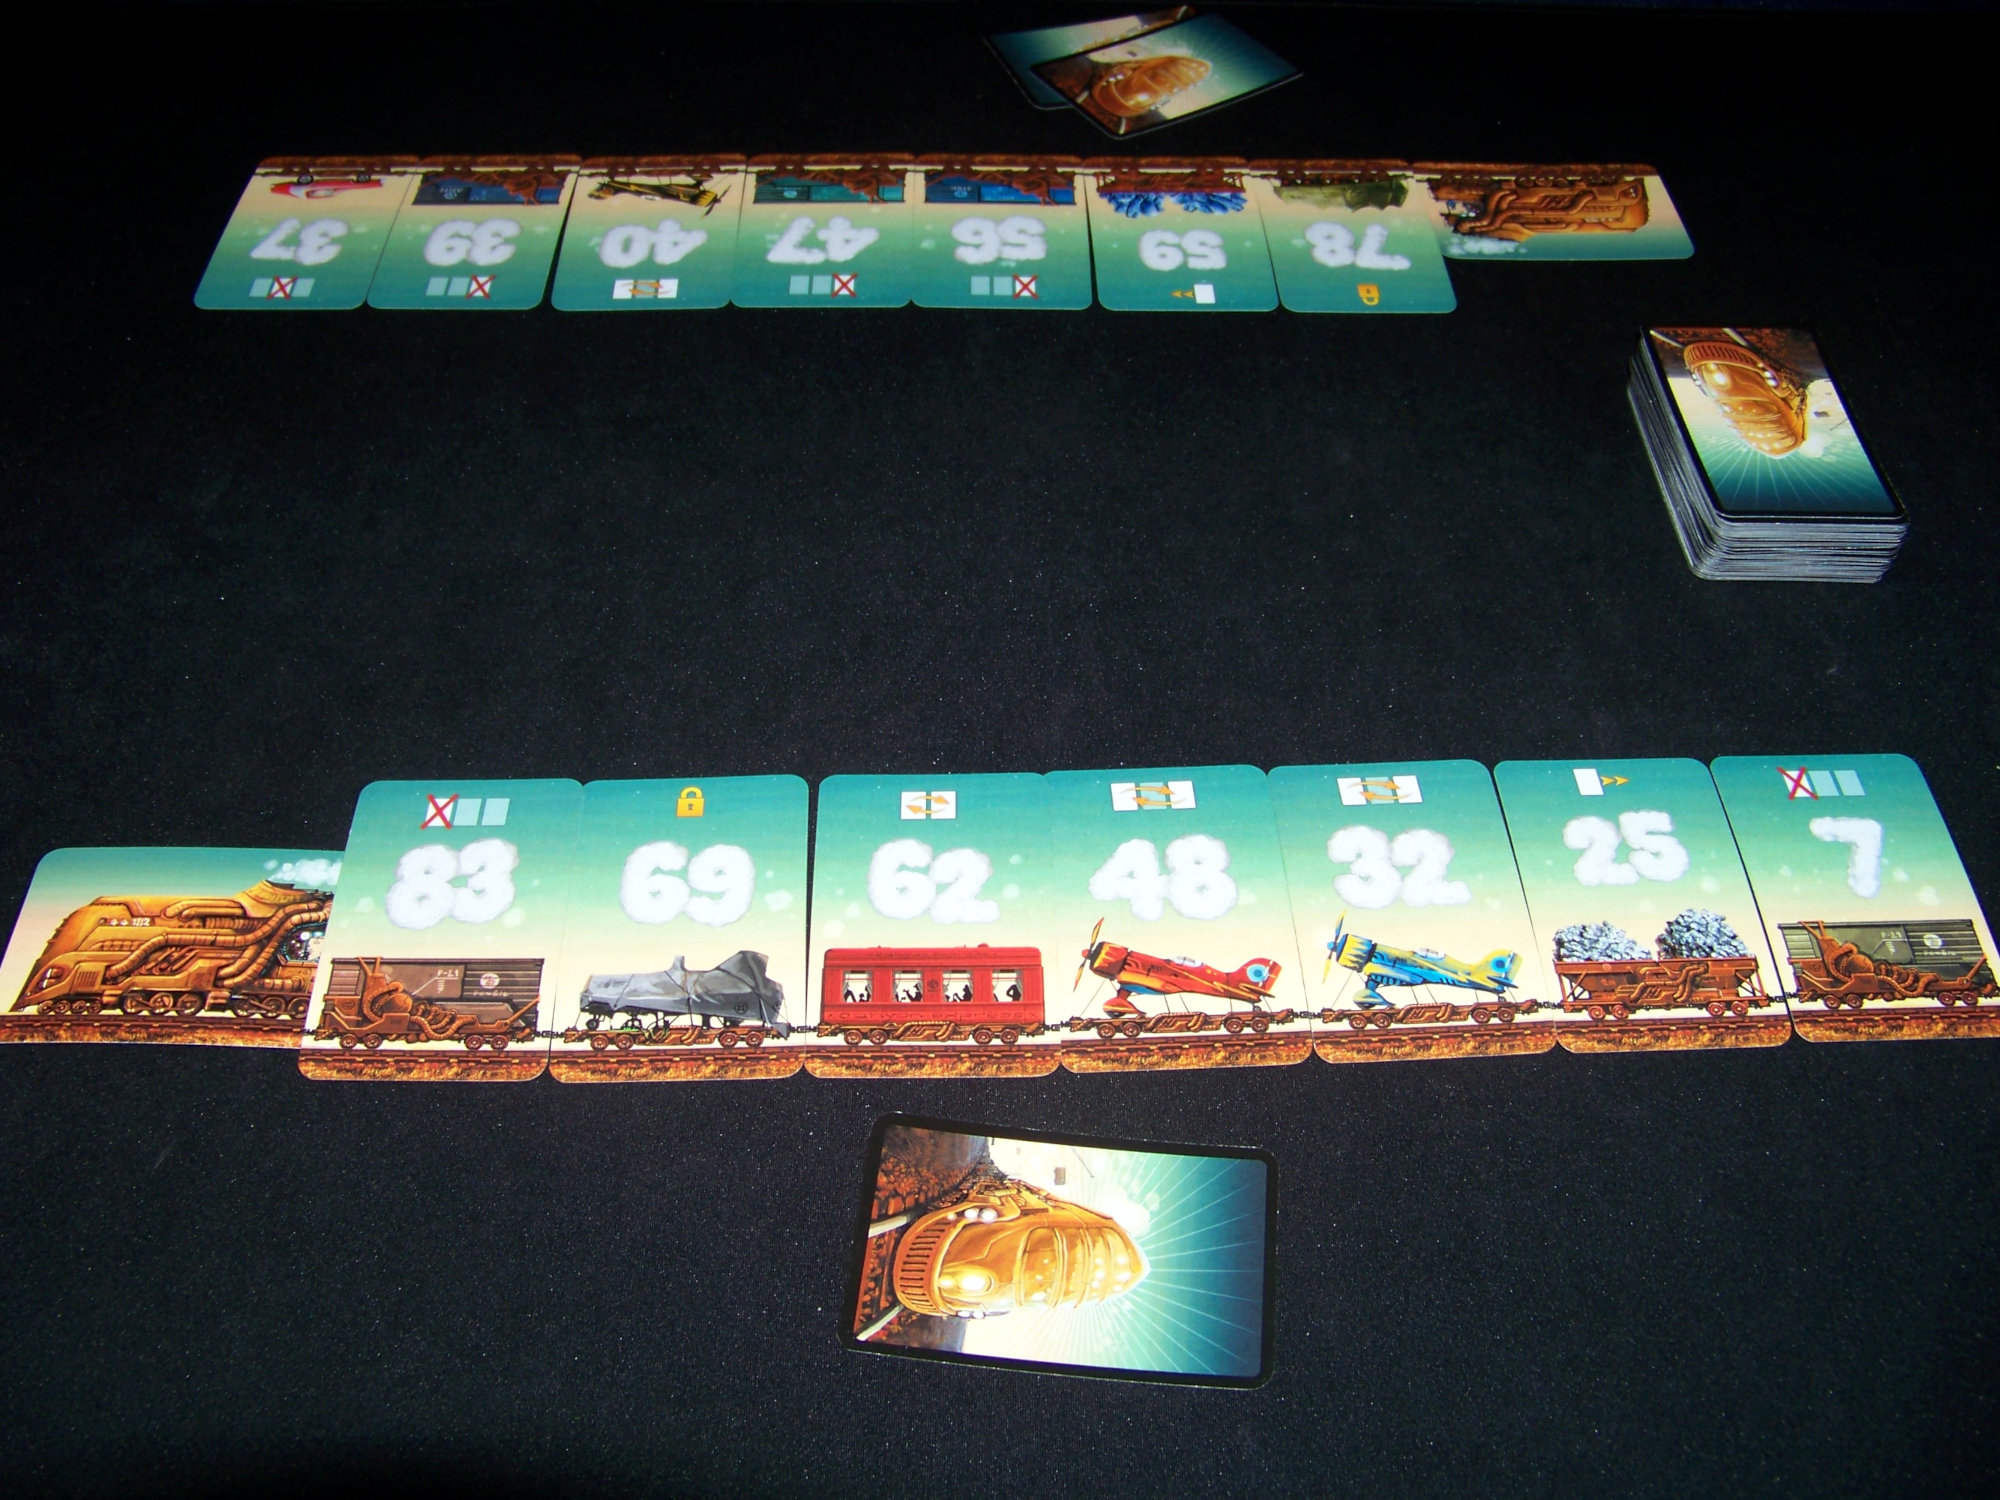 Juego de mesa Game of Trains - despliegue